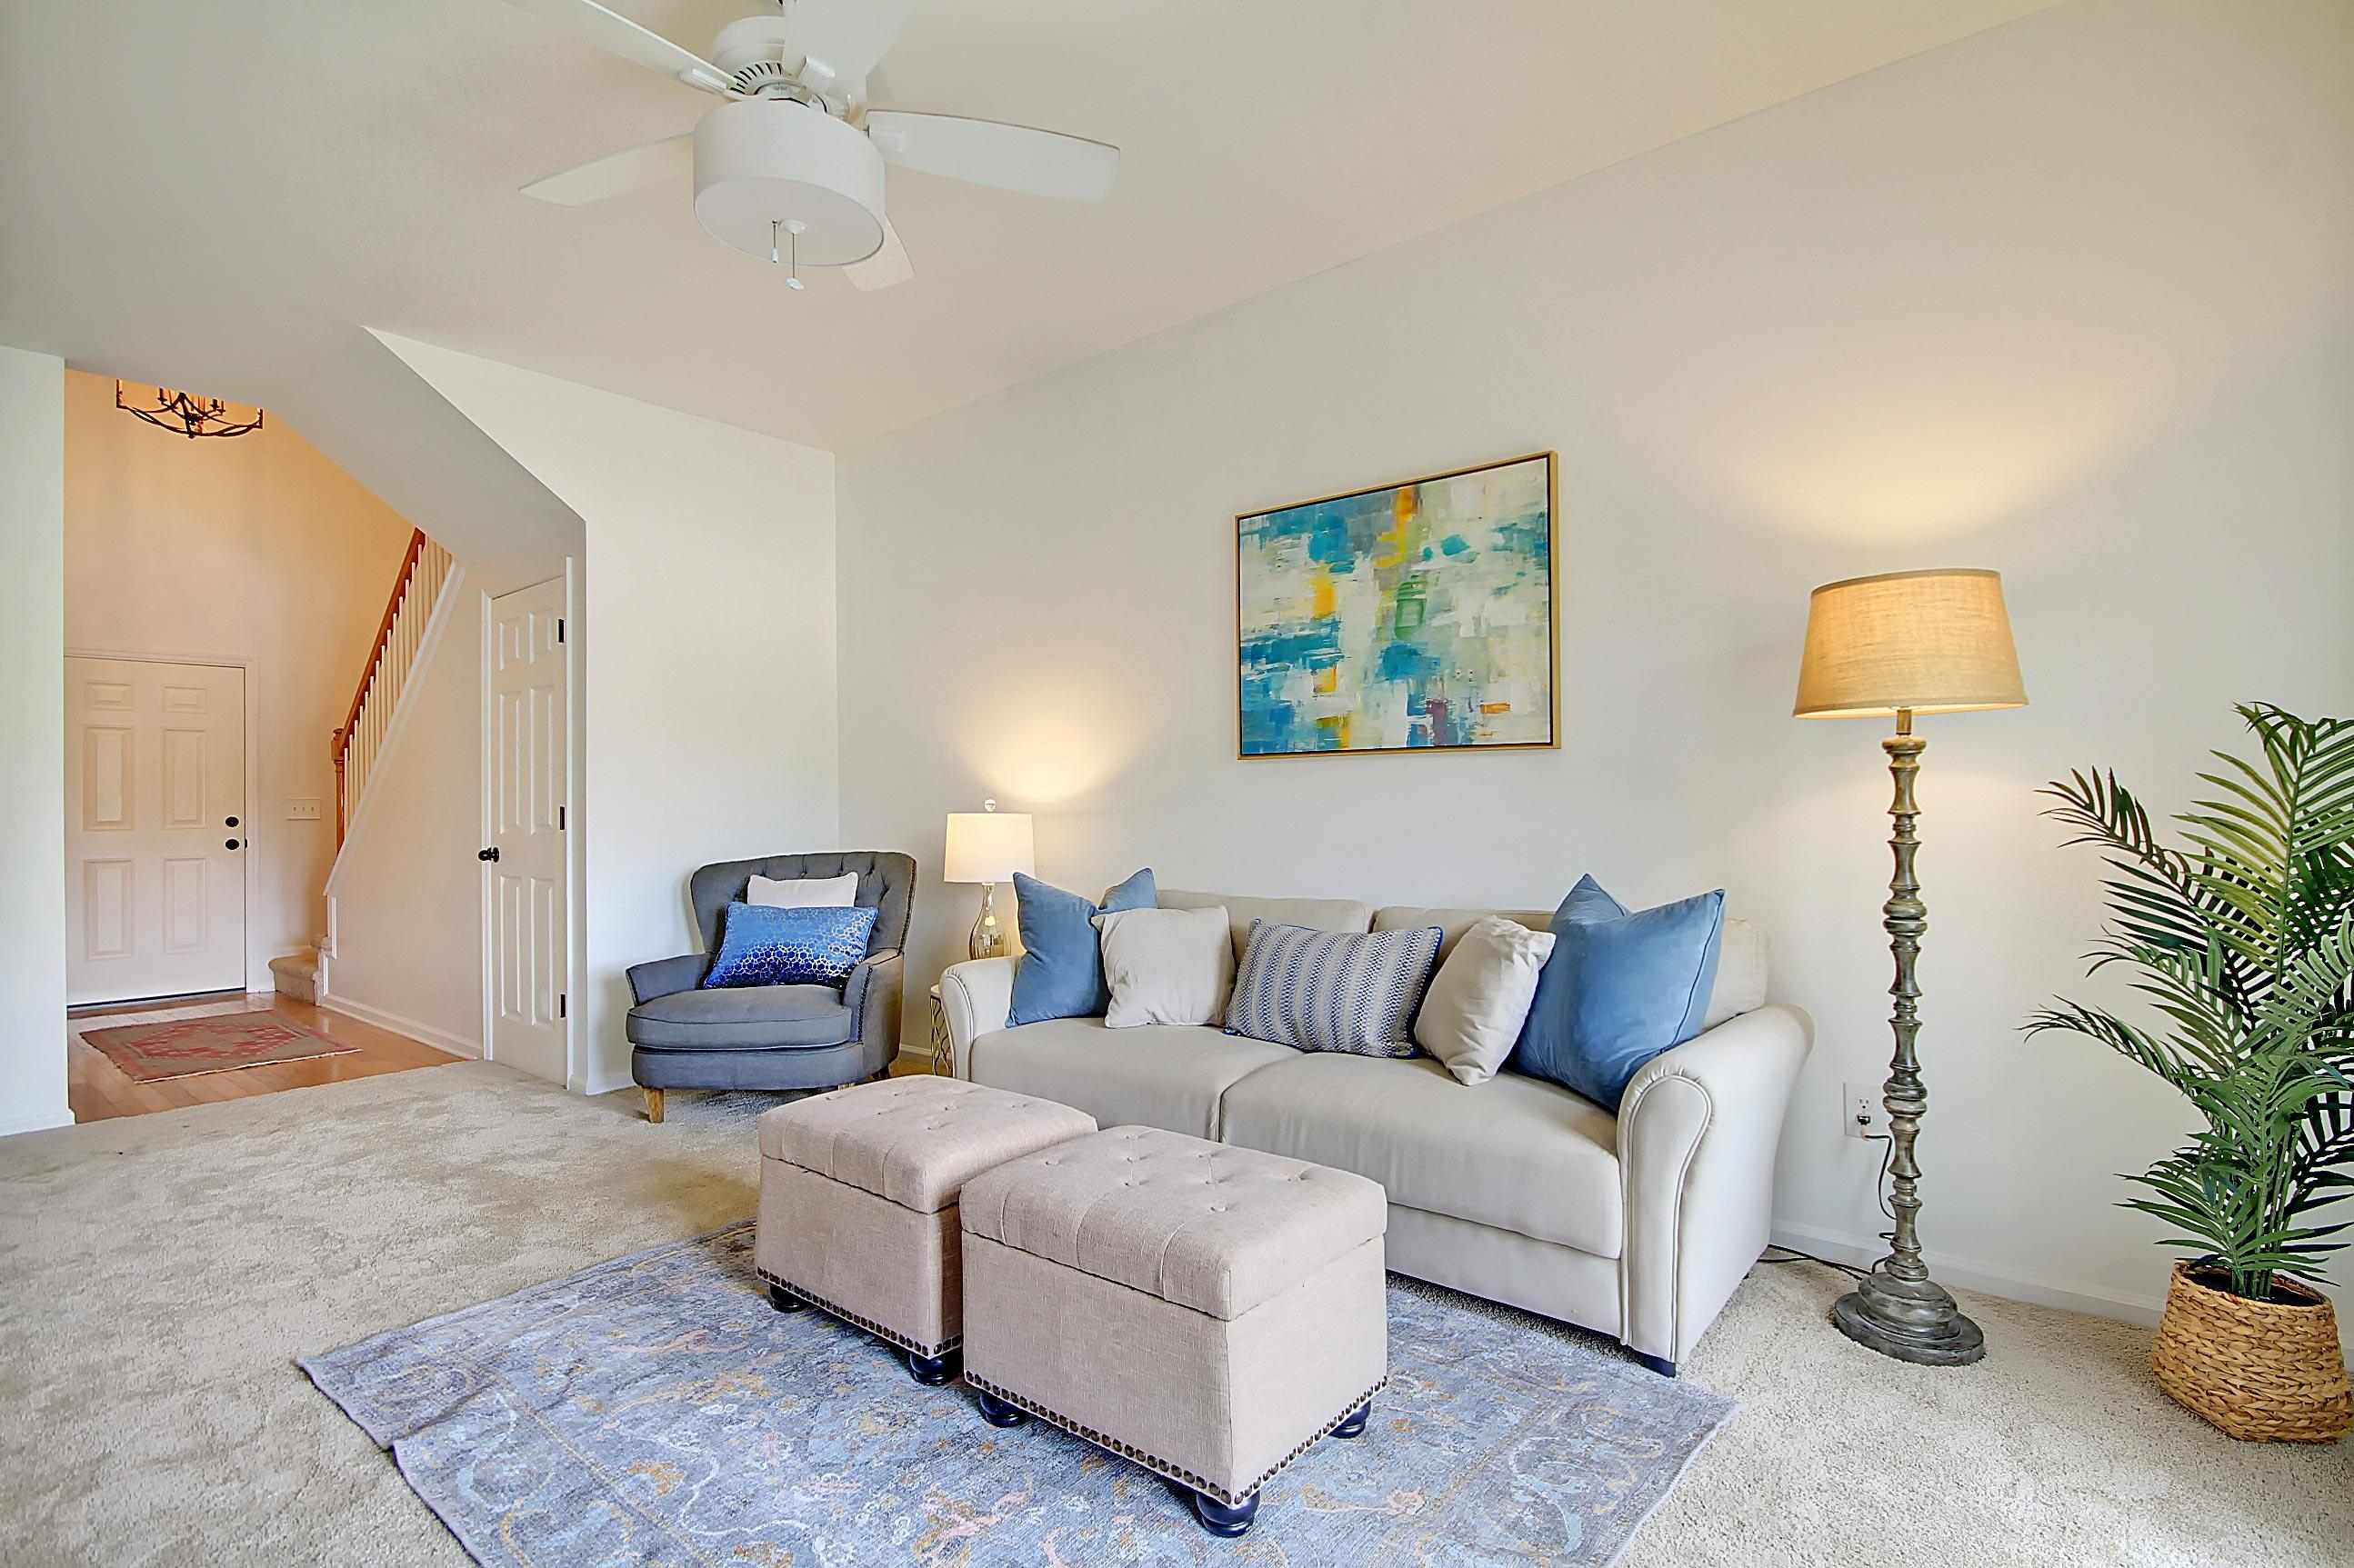 Rivers Point Row Homes For Sale - 37 Rivers Point, Charleston, SC - 5